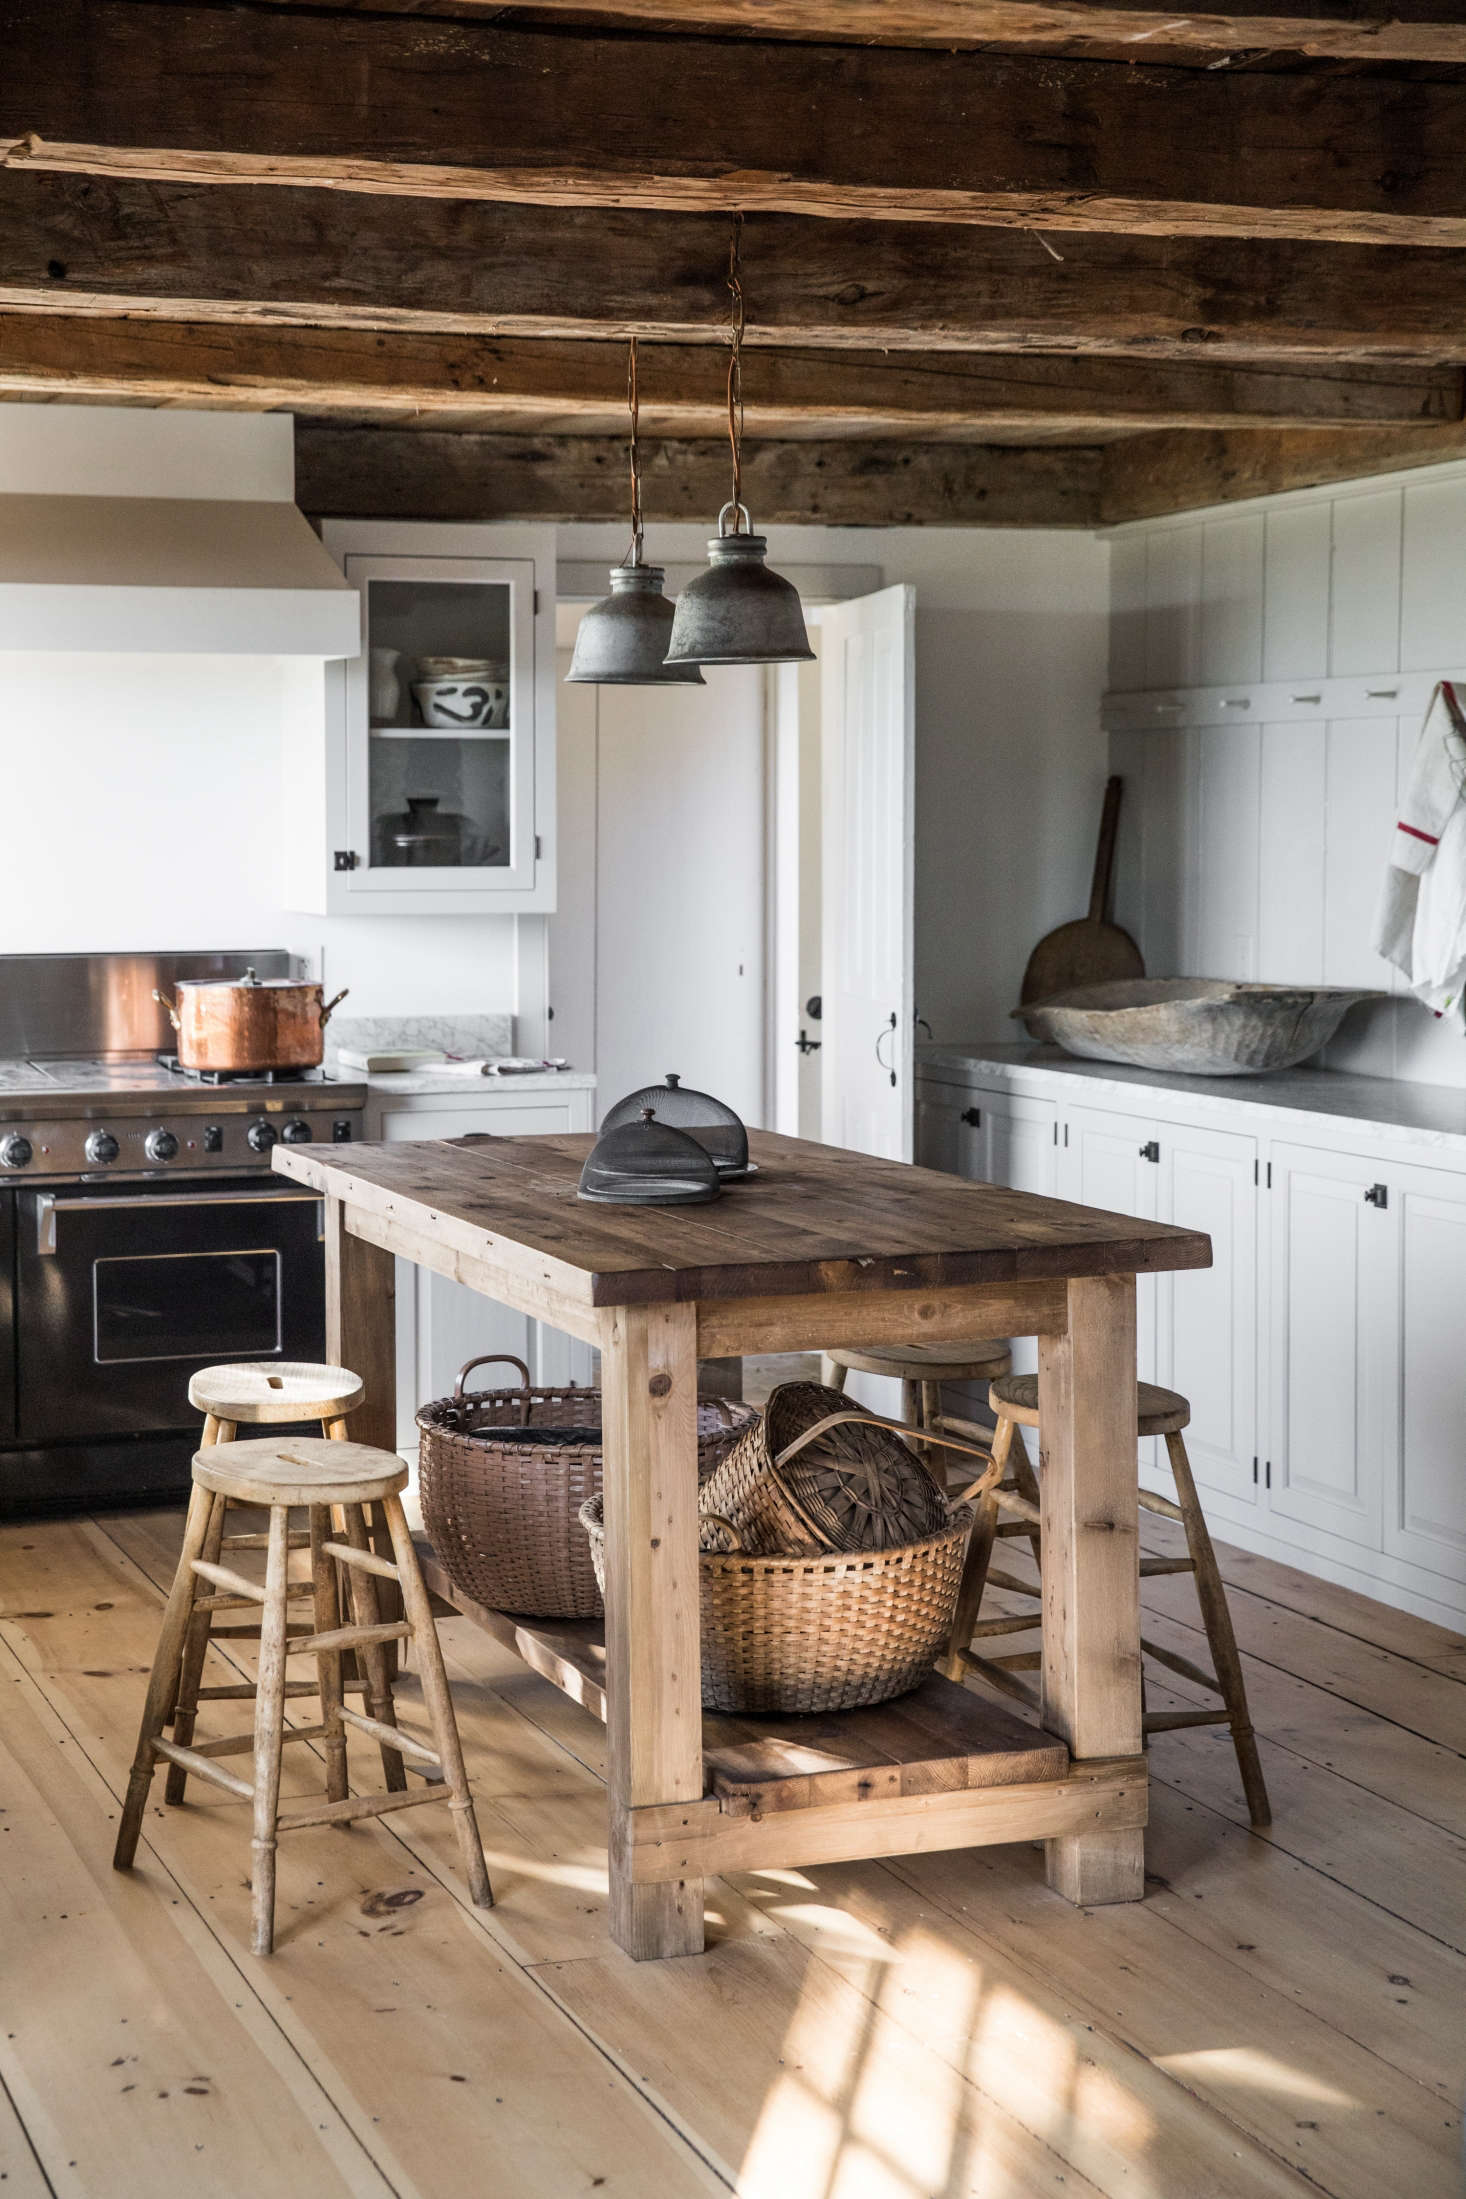 Esteves lined a wall of the kitchen with a Shaker peg rail. Clean towels are stored in the round baskets under the island. The wire cages were sourced from Trillium Soaps and the wooden stools were another Marston House find.